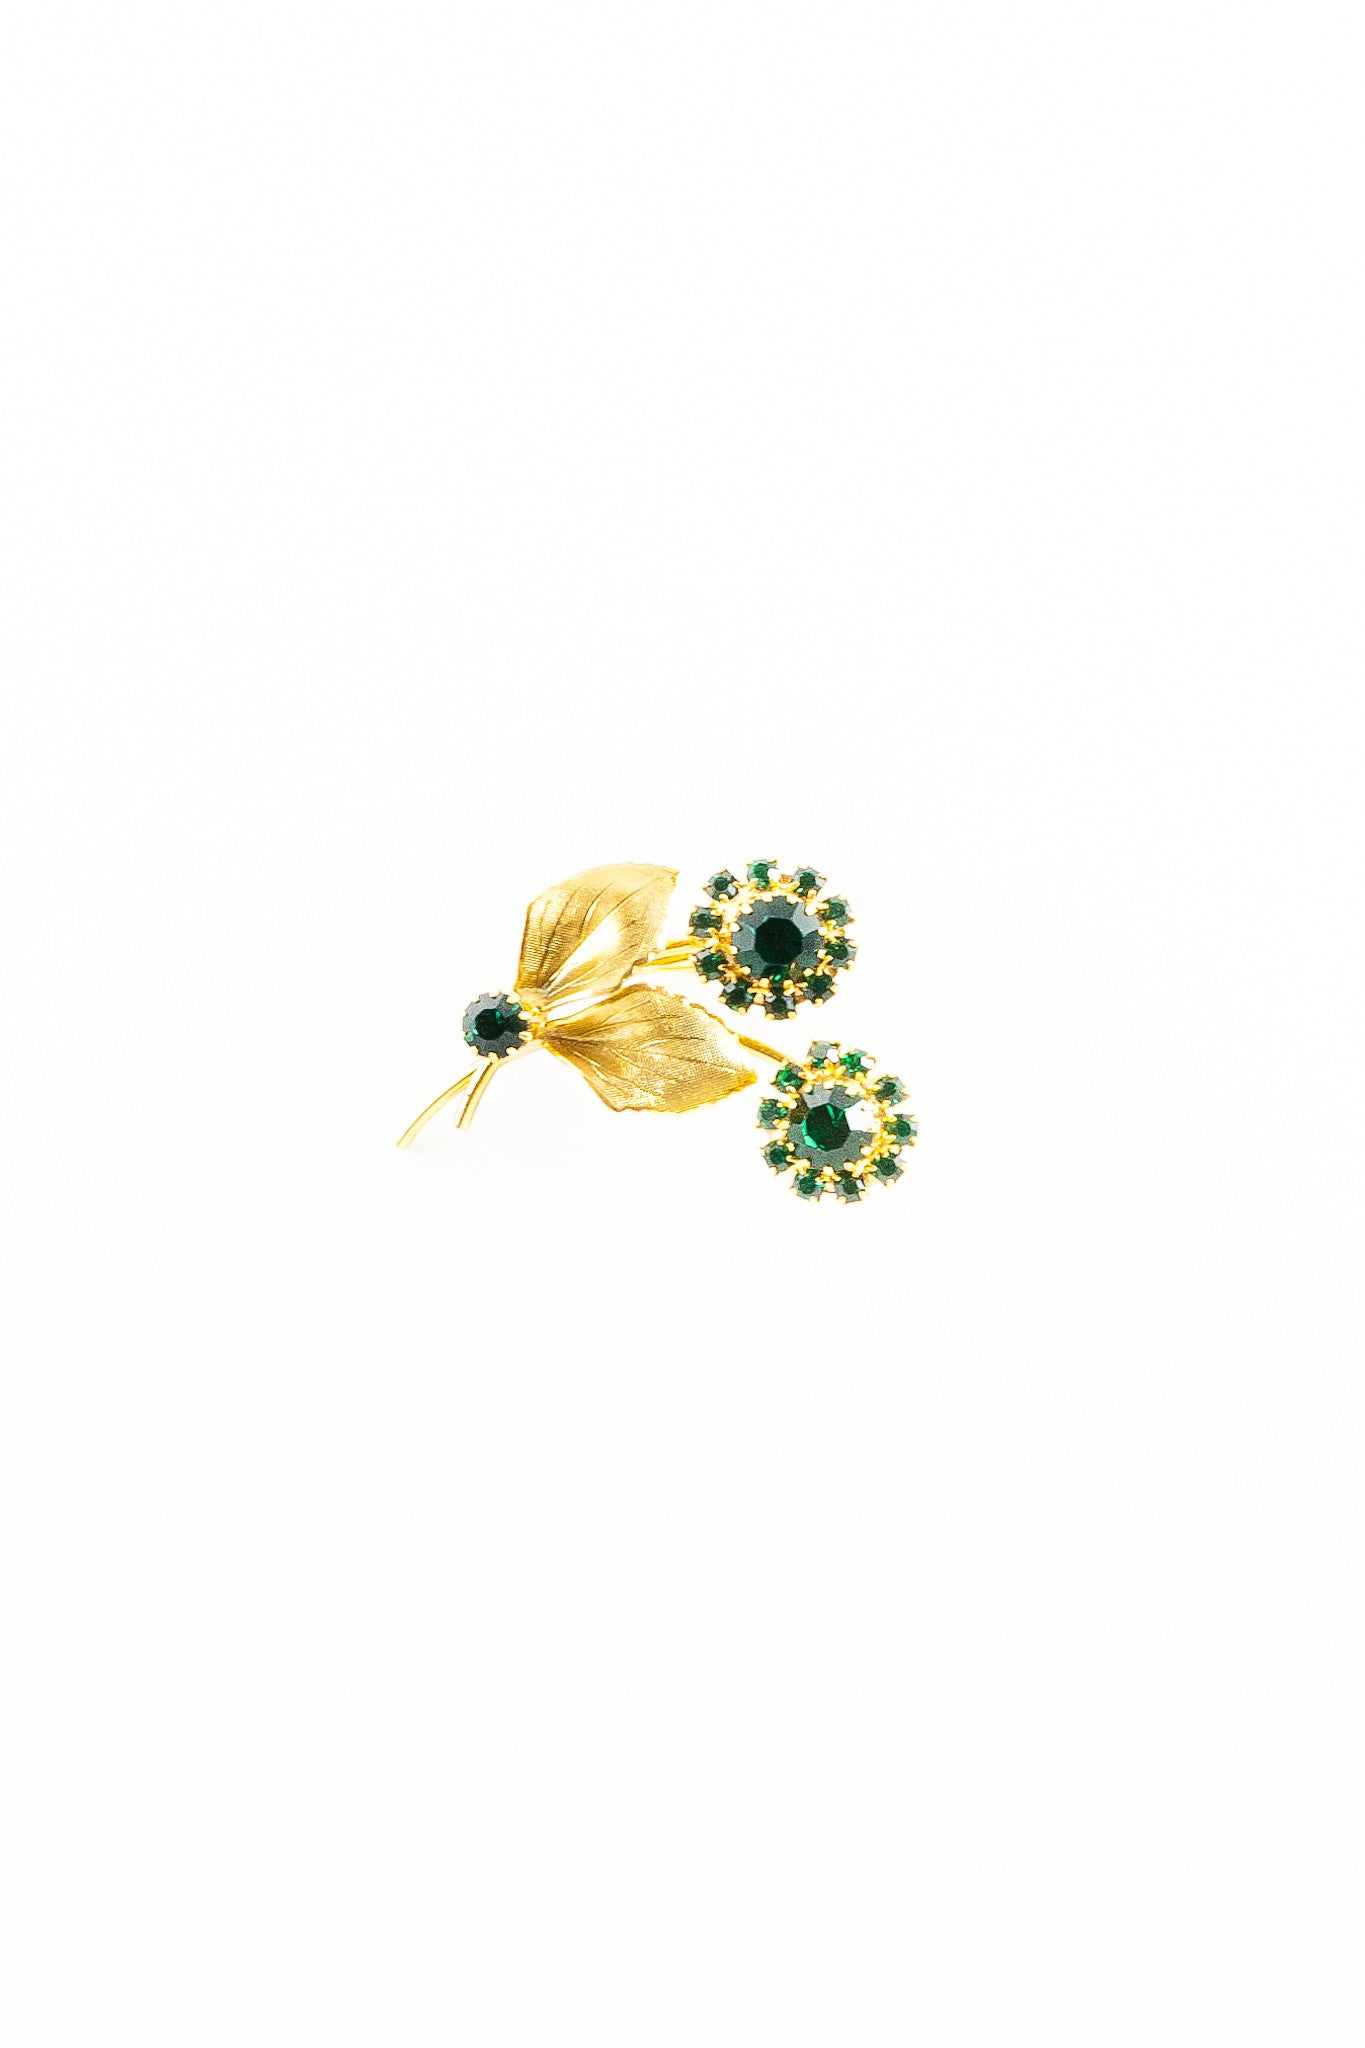 60's__Vintage__Emerald Flower Brooch